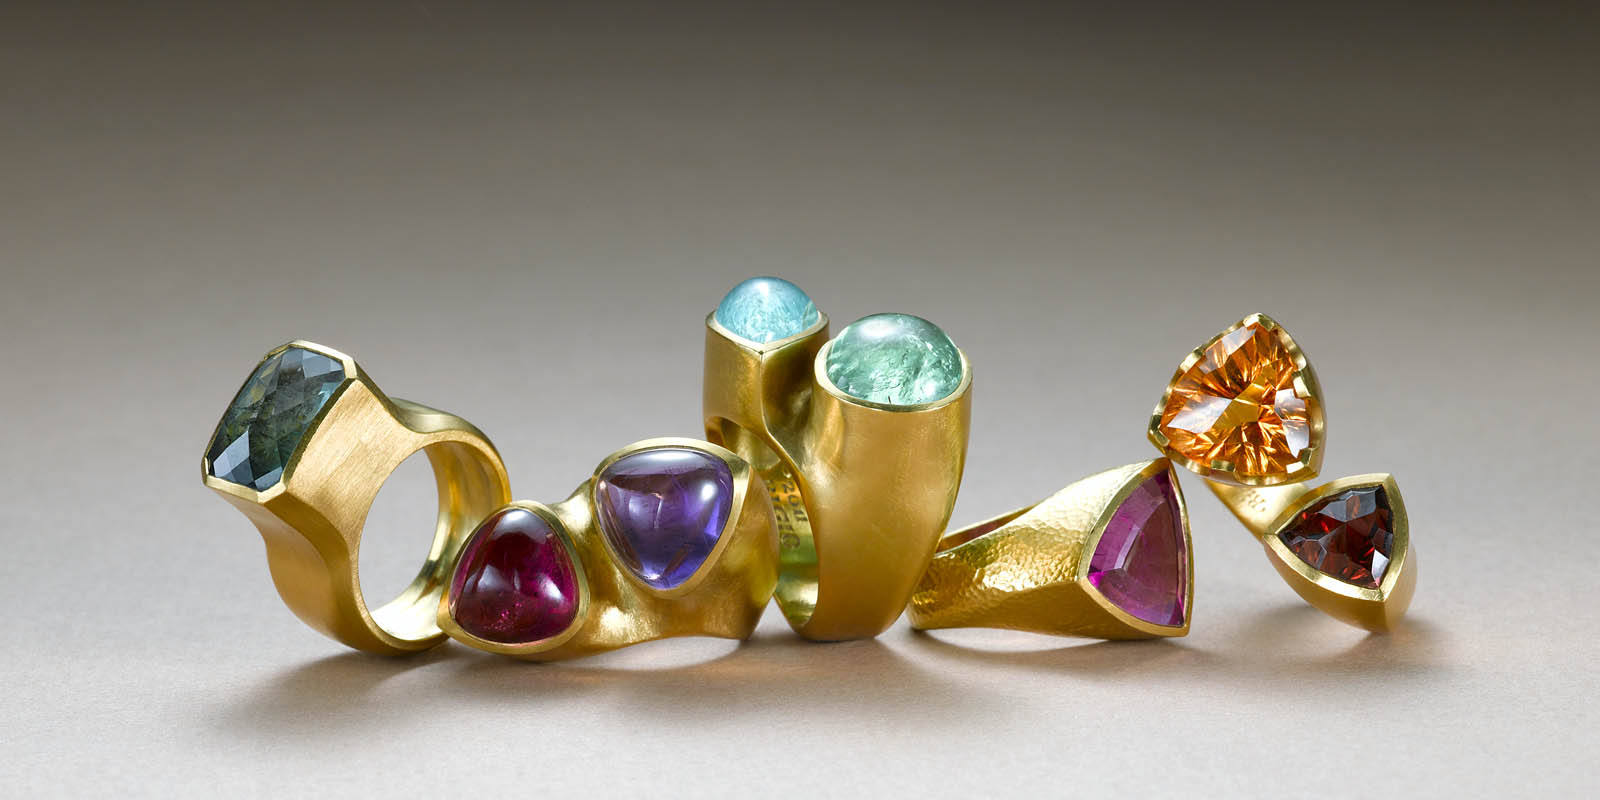 22 karat sculptured rings with afgani tourmaline, pink tourmaline and amethyst trillium cabs, green and blue paraiba tourmalines, rubelite shield, and carved citrine and garnet.